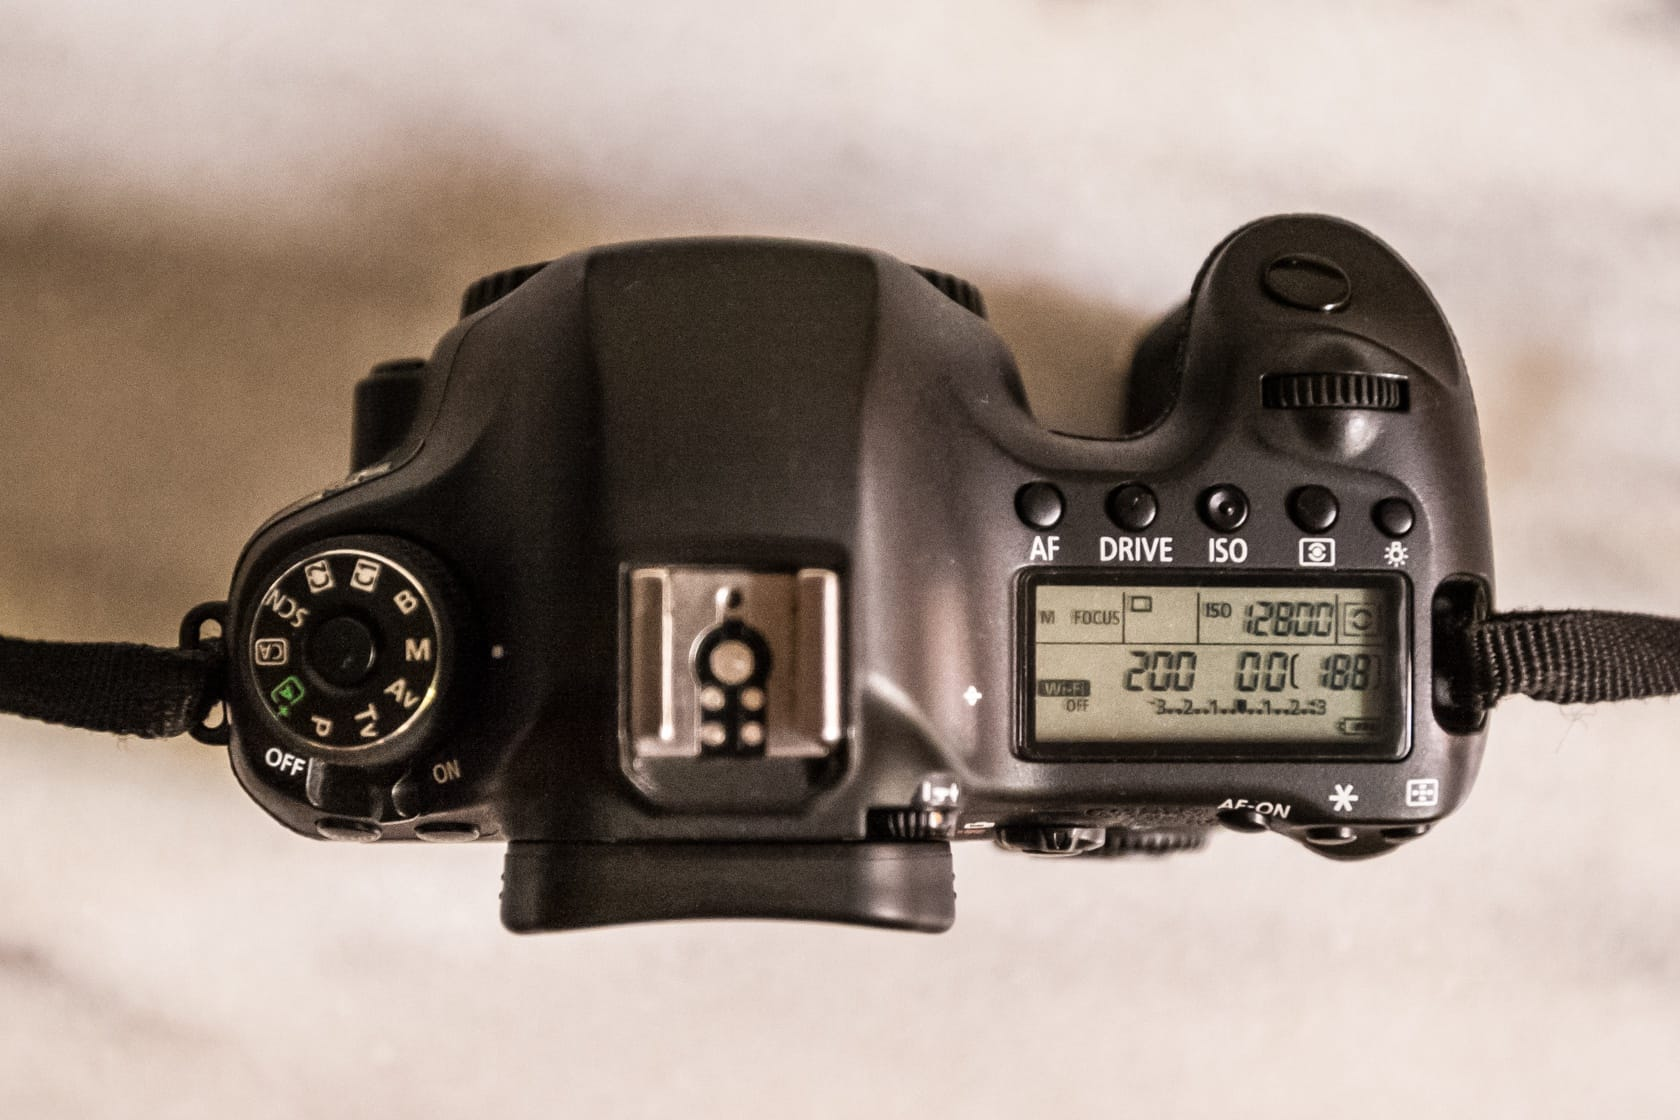 Top of the Canon 6D